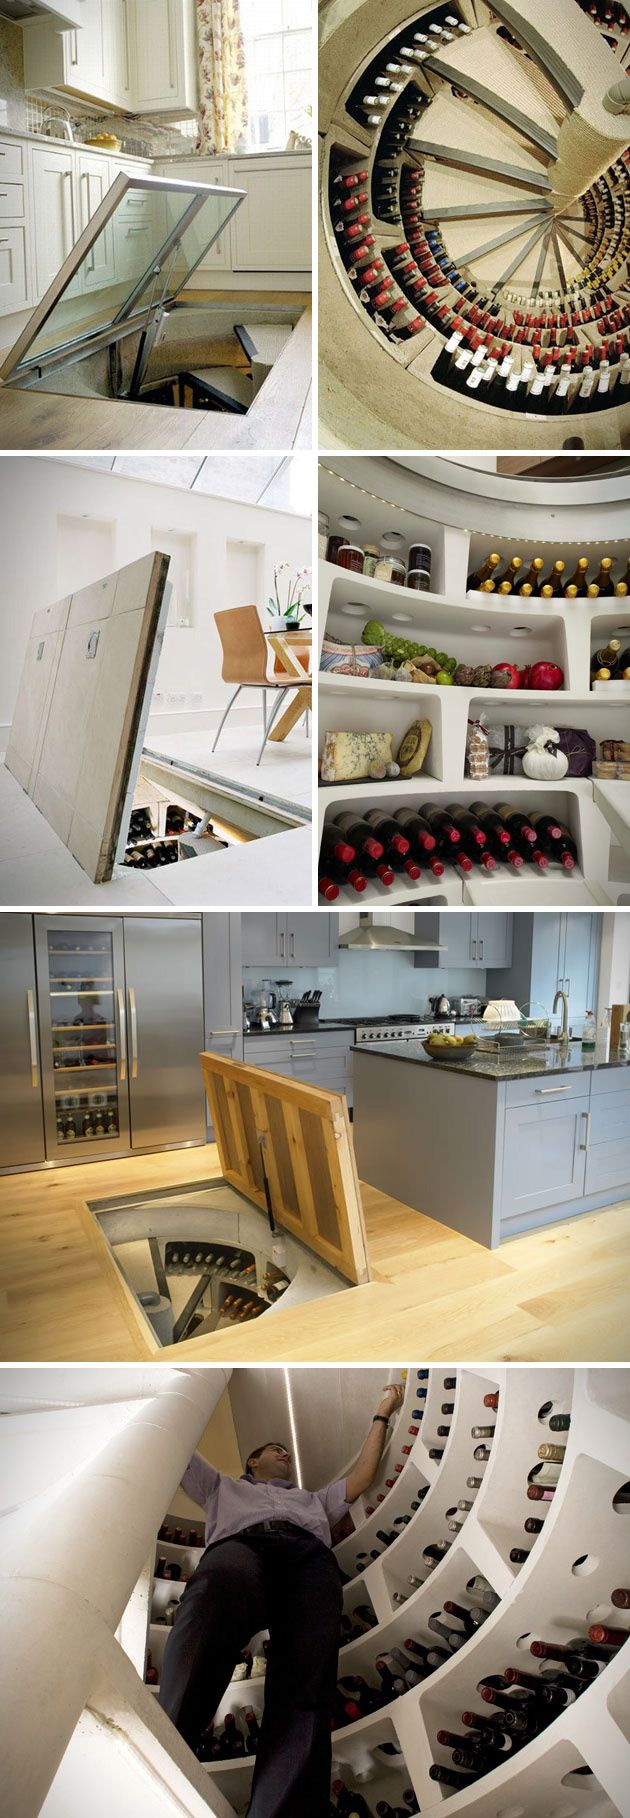 Wine Cellar In Kitchen Floor 1000 Ideas About Spiral Wine Cellar On Pinterest Home Wine